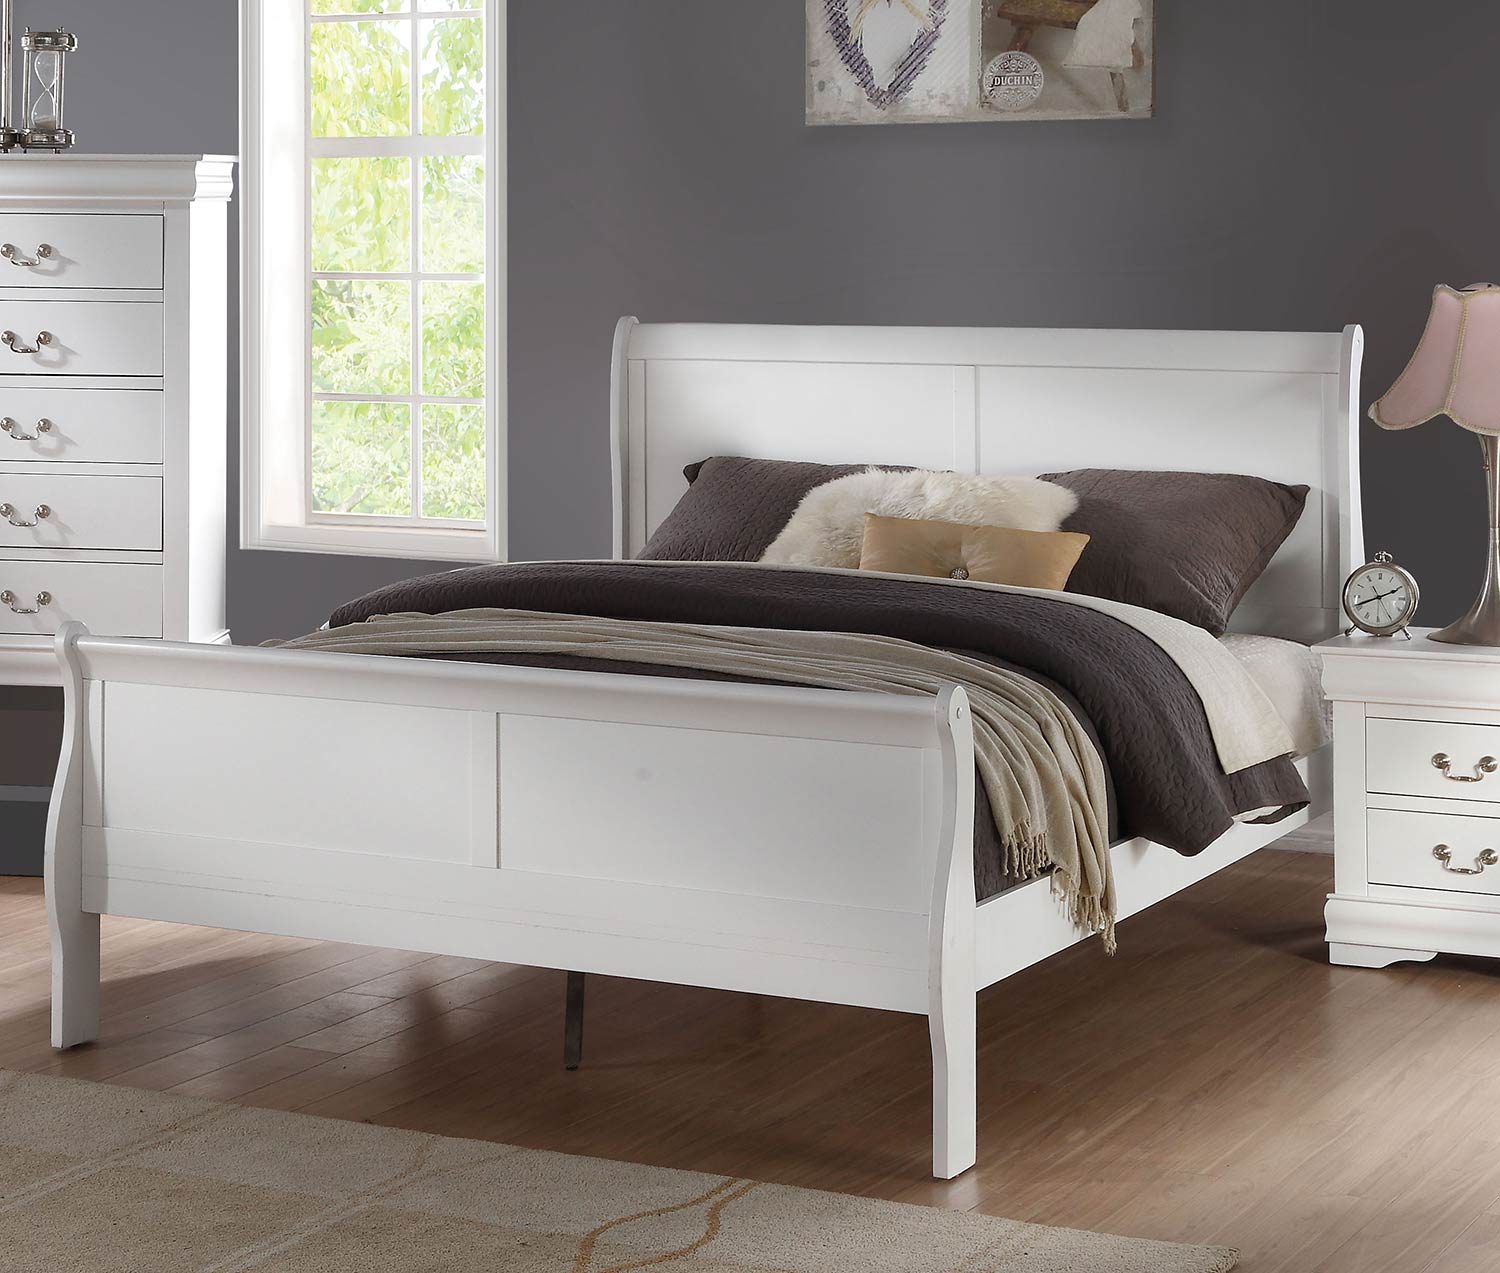 Acme Louis Philippe Bed - White